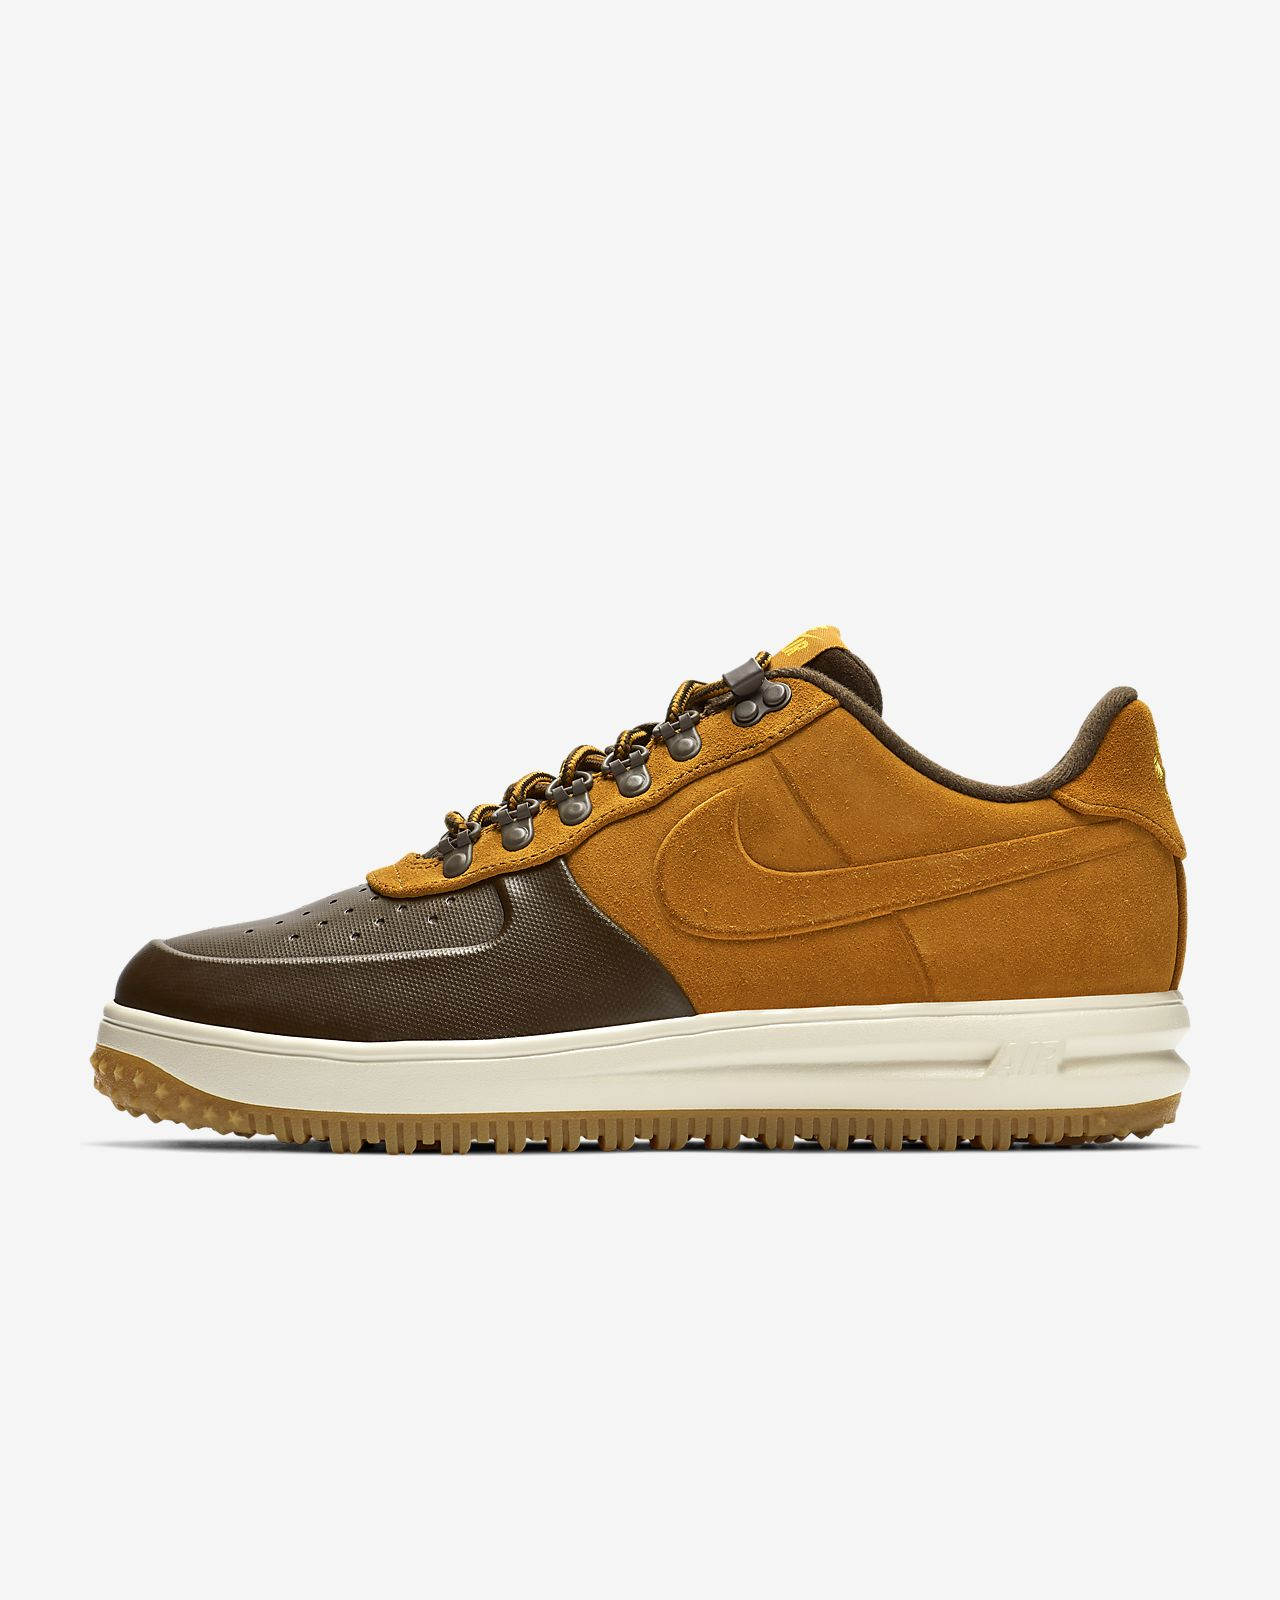 Force Lunar 1 Chaussure Homme Low Pour Duckboot Nike OEwE5aqZ